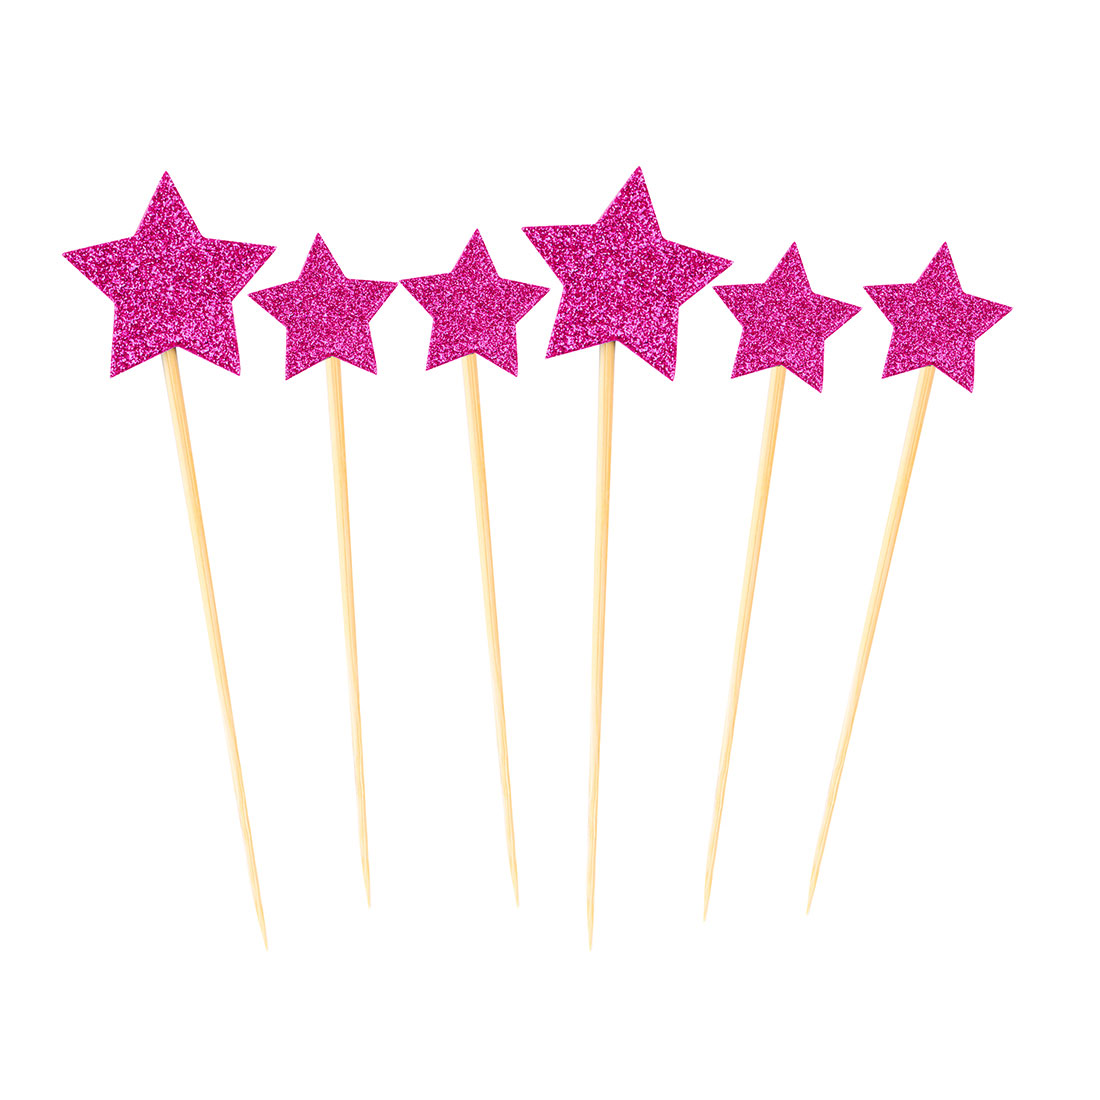 Birthday Cupcake Star Shaped Glittery Toothpicks Picks Topper Fuchsia 6 in 1